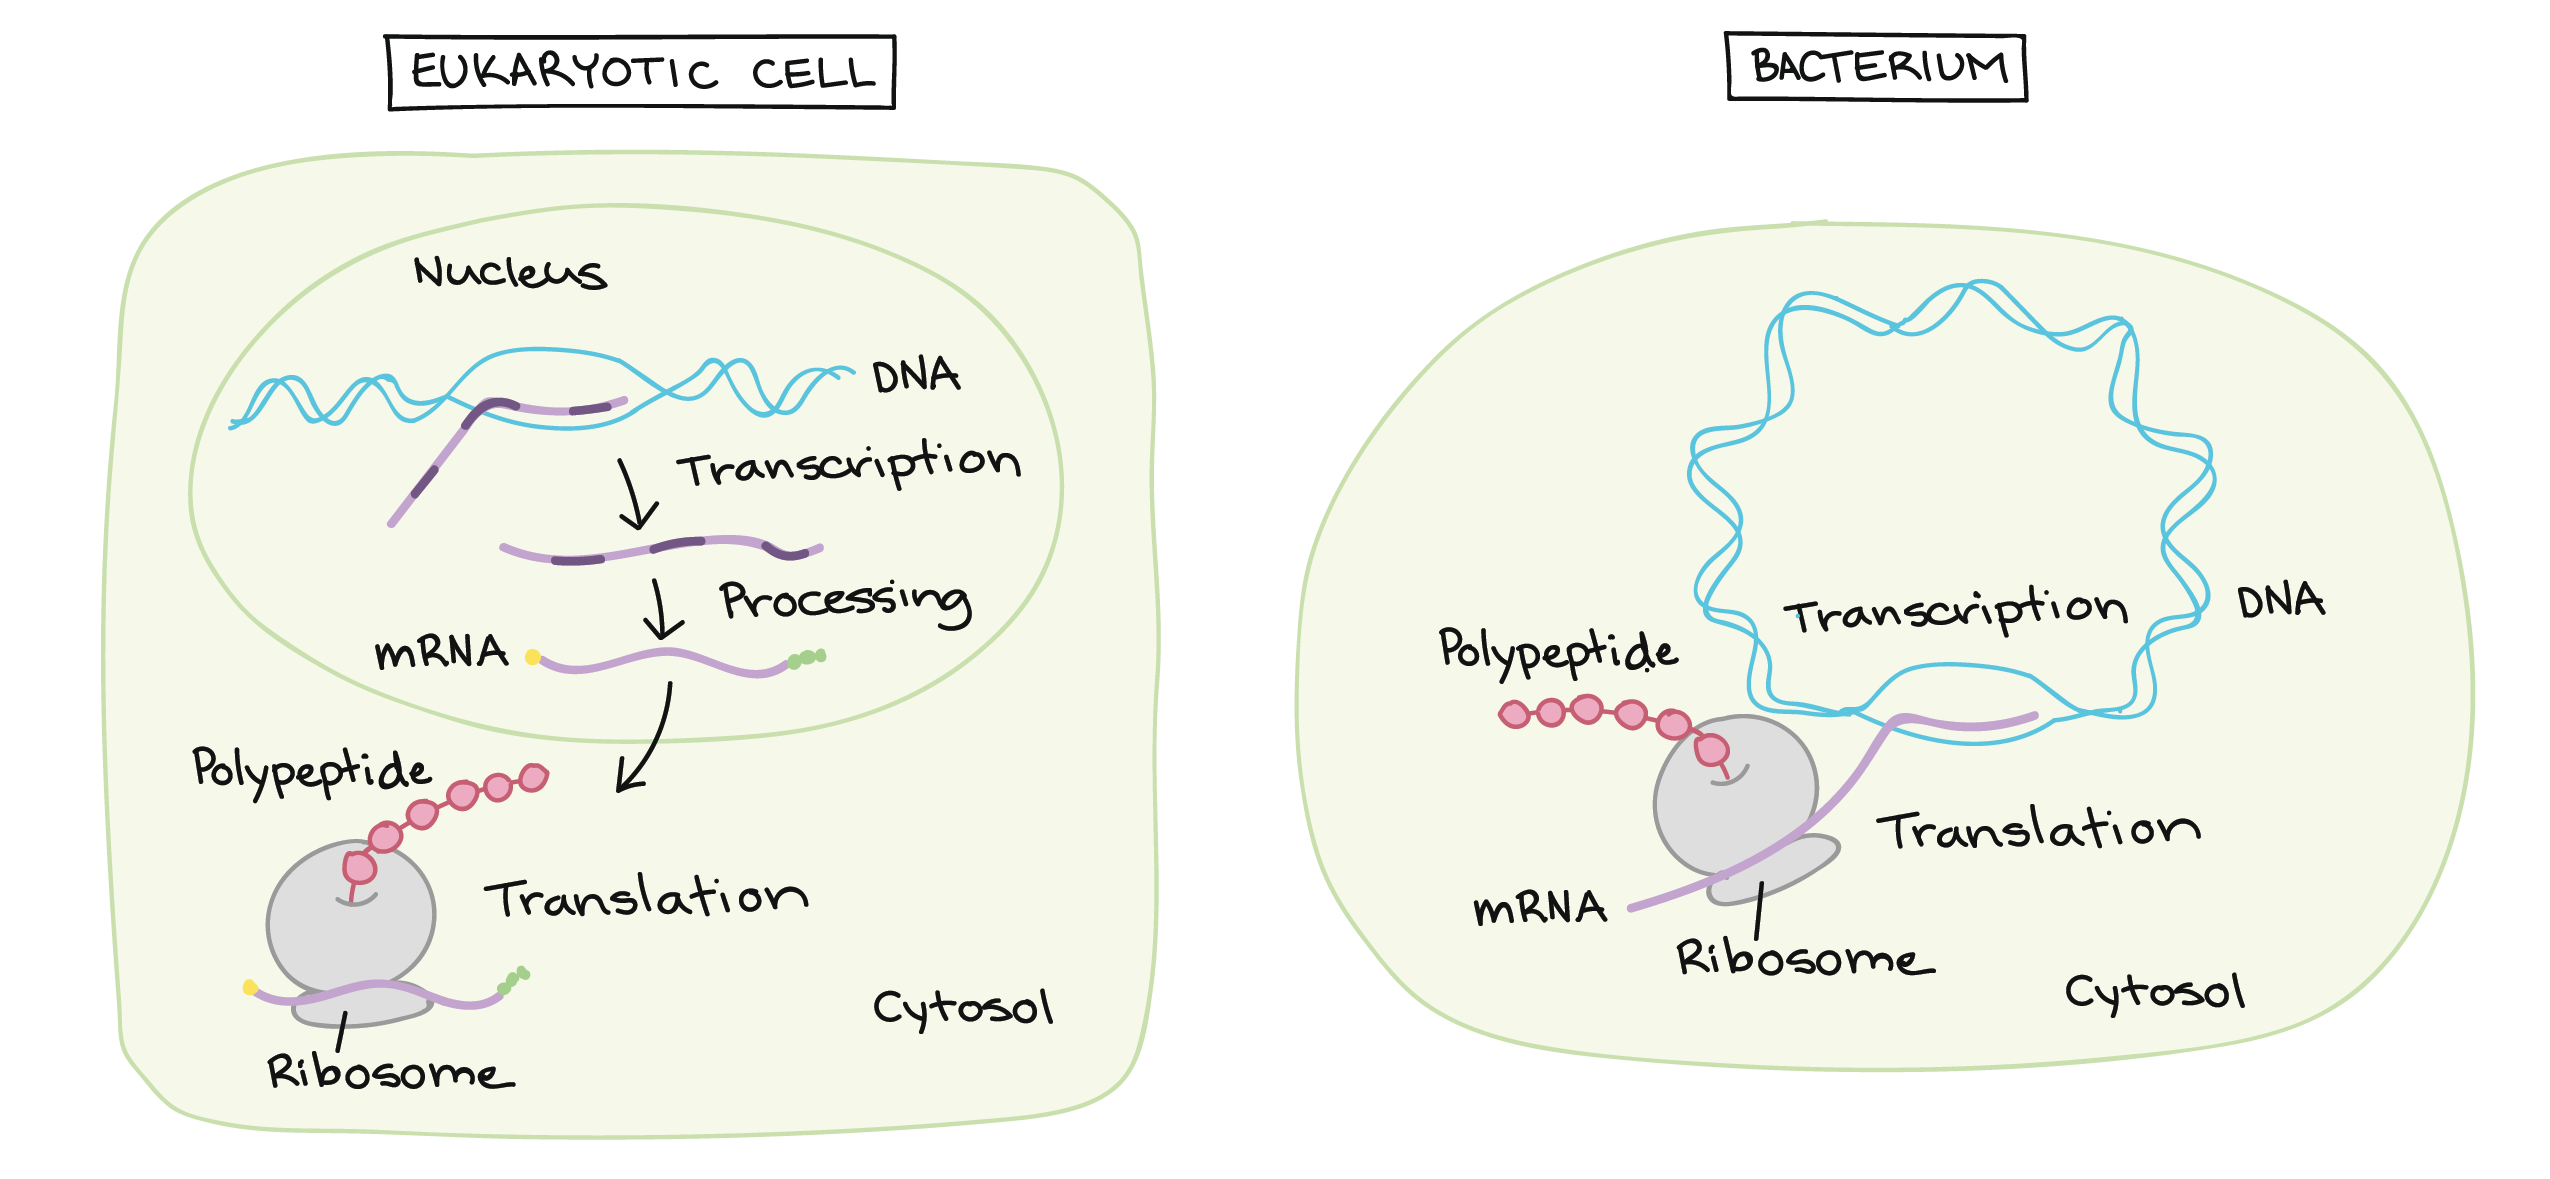 Topic rooms within Cell Biology